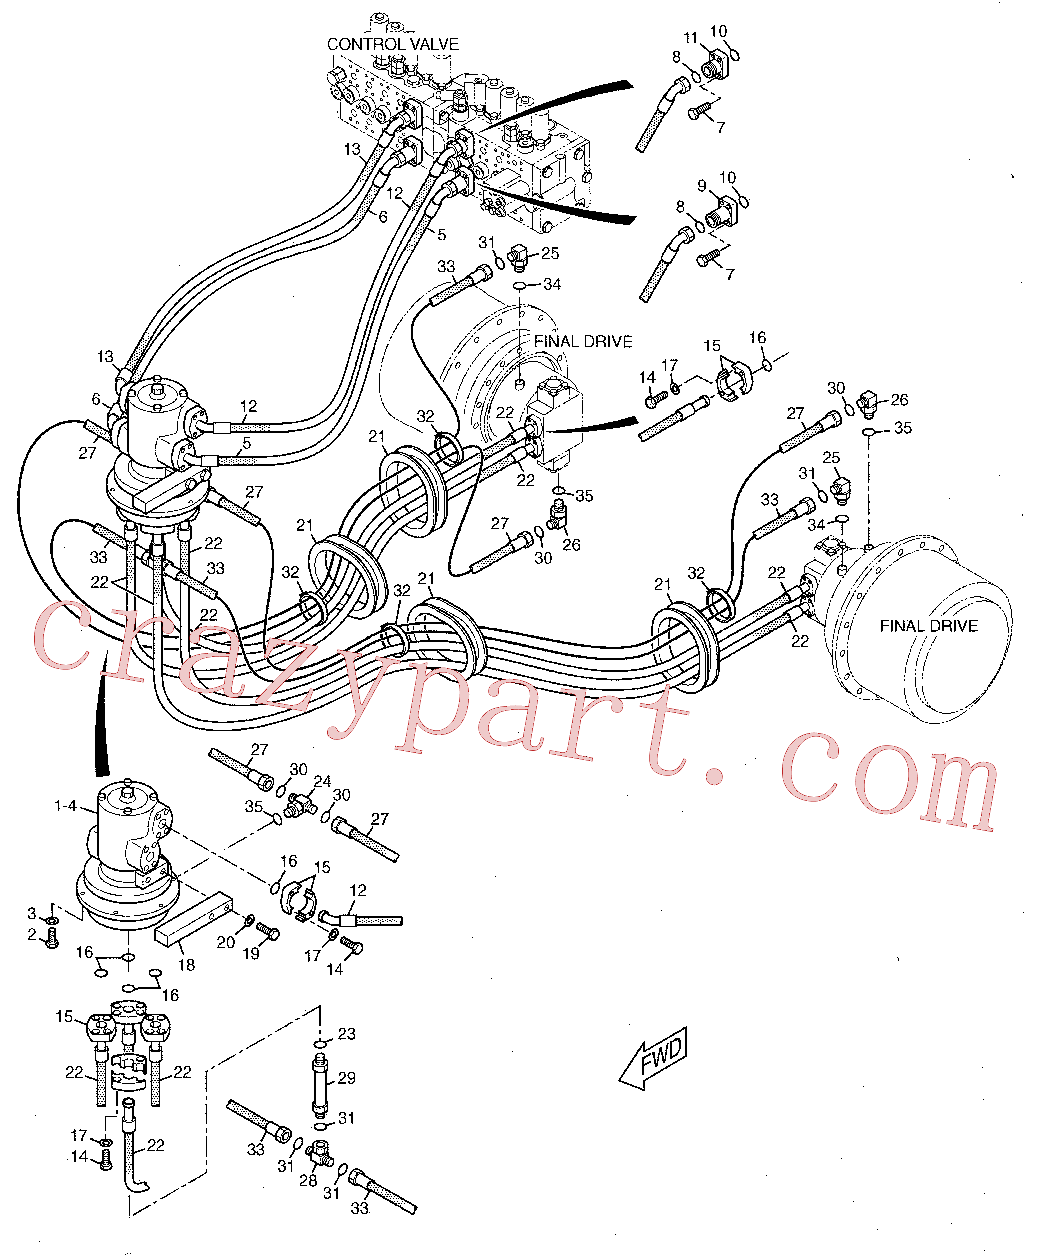 CAT 104-8771 for 323F SA Excavator(EXC) hydraulic system 142-7702 Assembly